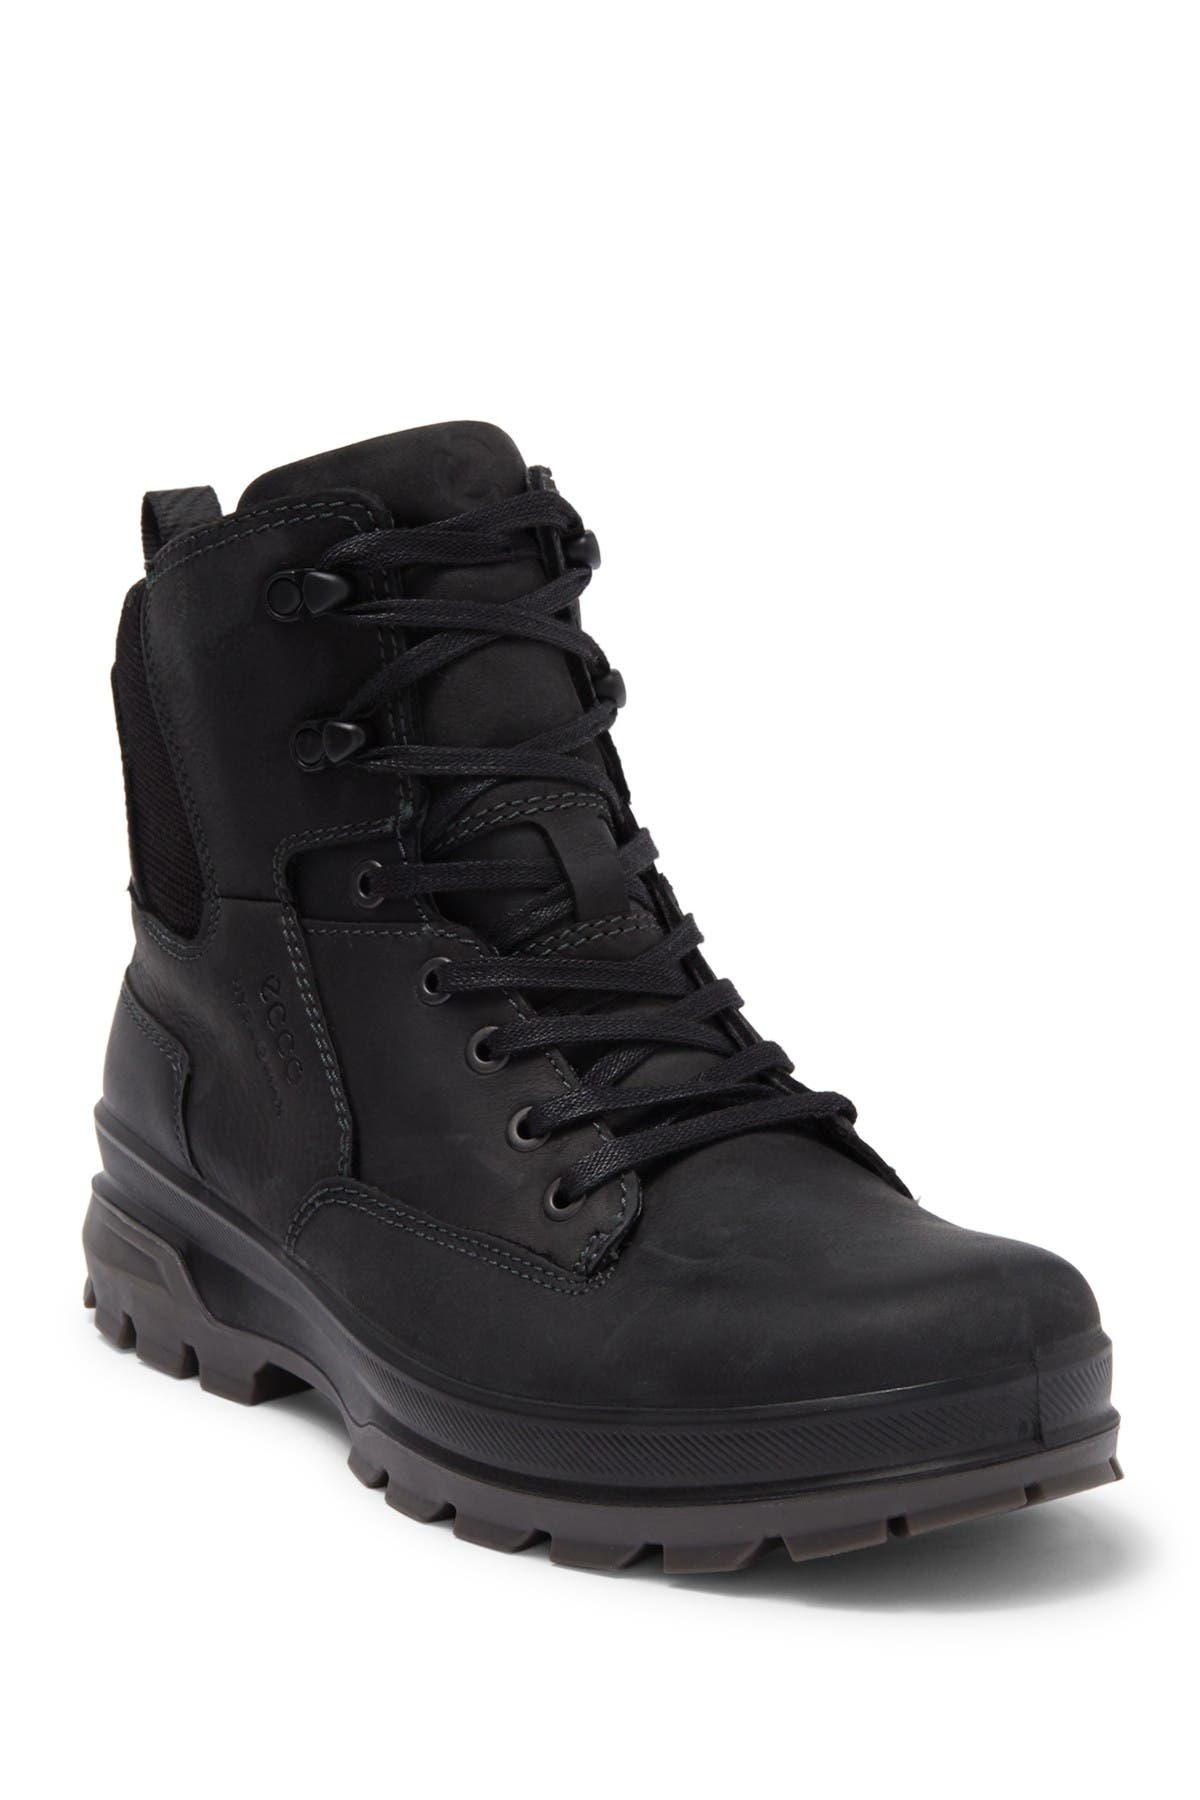 Image of ECCO Rugged Track Lace-Up Boot